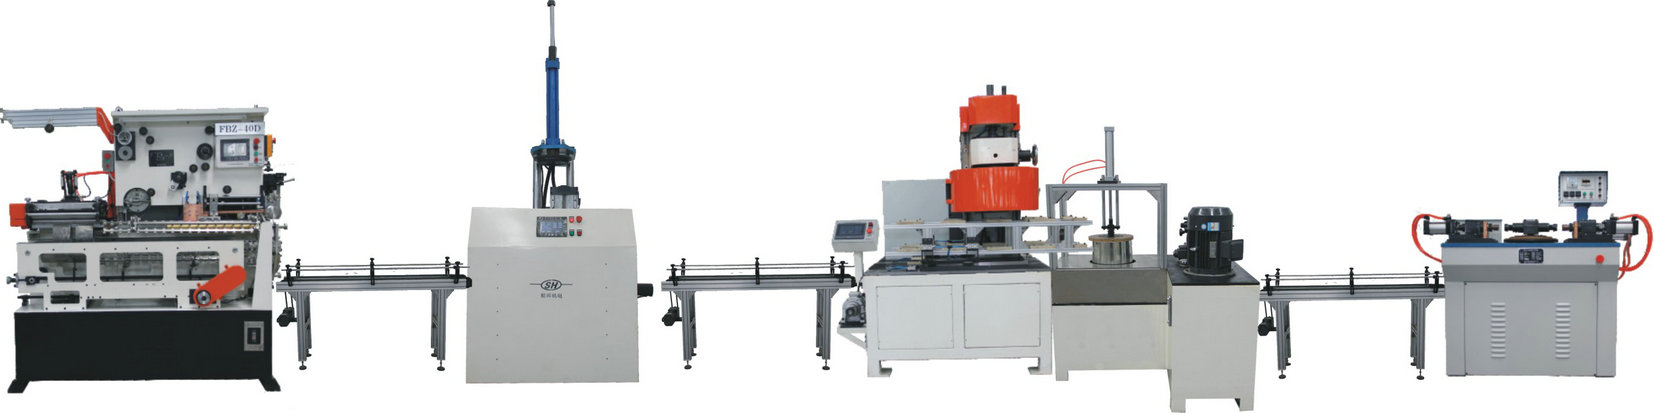 SHFB-11 automatic tin can production line